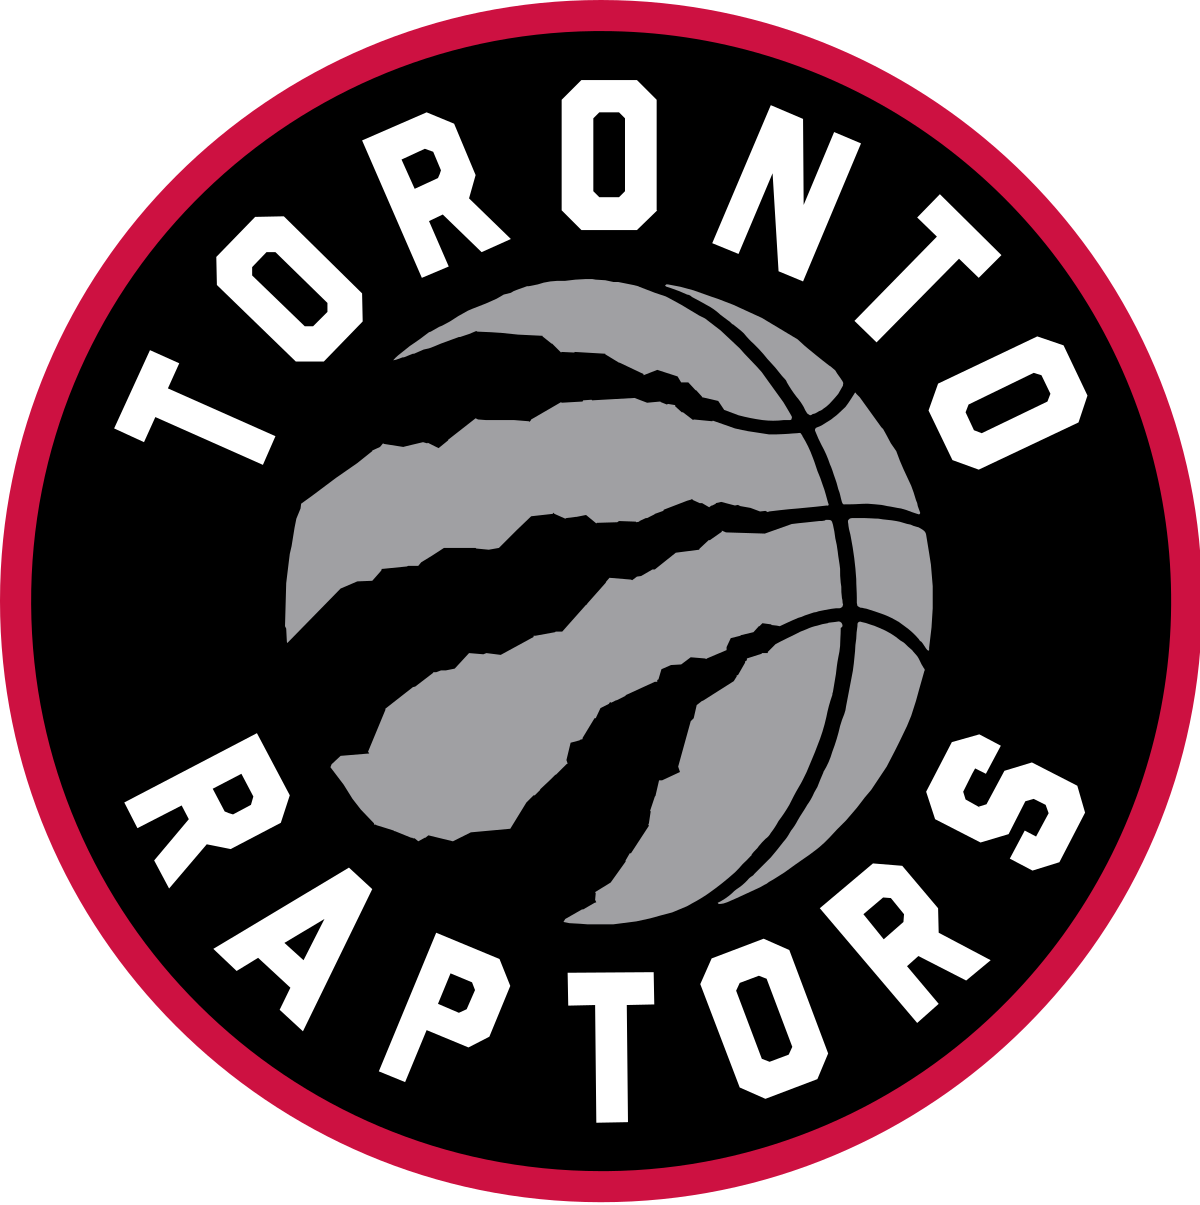 Drawing rockets team nba logo. Toronto raptors wikipedia